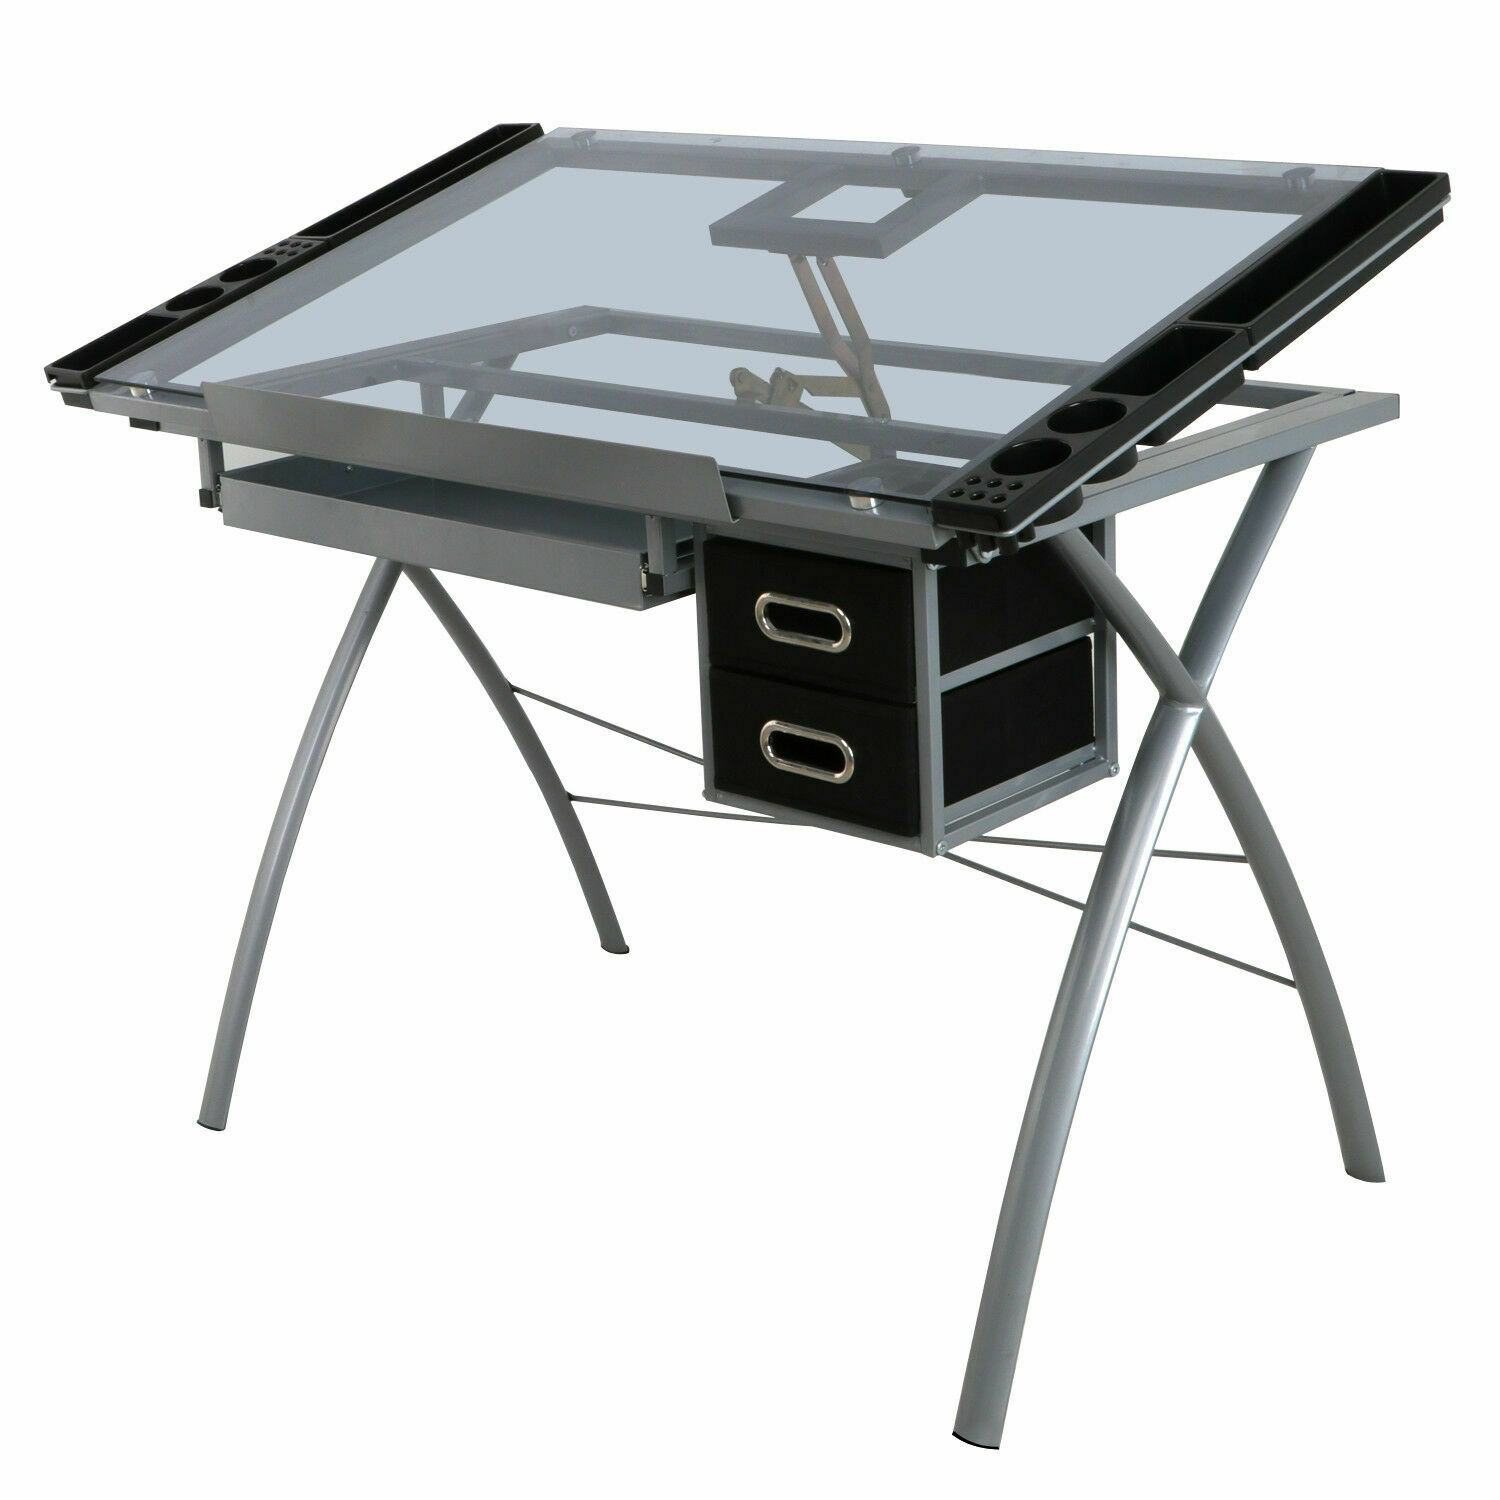 Beau Adjustable Drawing Desk Drafting Table Tempered Glass Top Art Craft Station  1 Of 1FREE Shipping ...